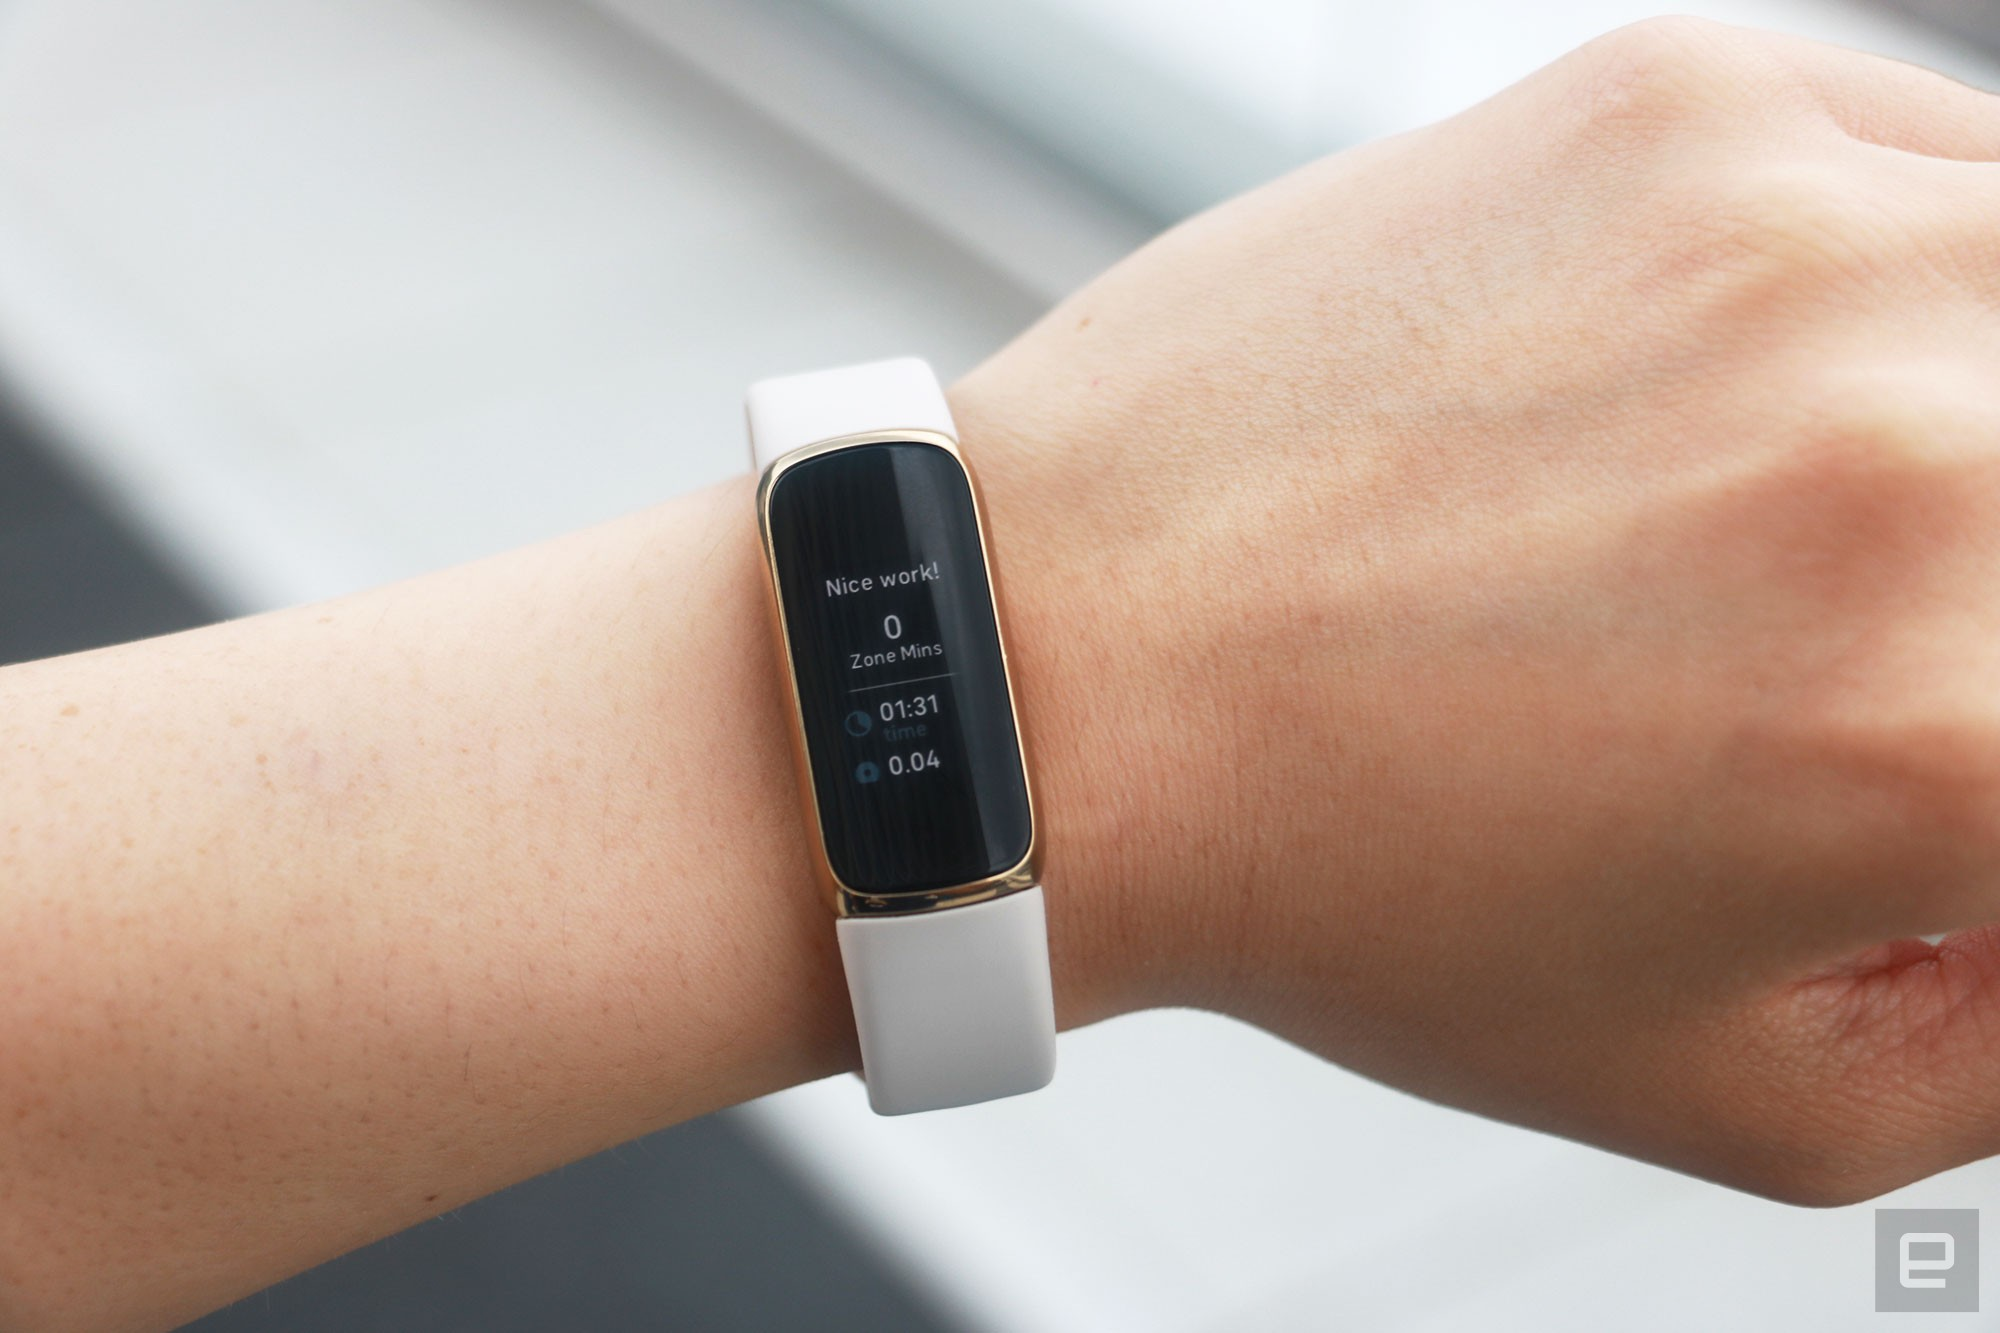 """<p>The Fitbit Luxe with a light pink silicone band on a wrist facing the camera. The screen shows a post workout report saying """"Nice work!"""" with results including 0 zone minutes earned and 1 minute and 31 seconds spent covering 0.04 miles.</p>"""